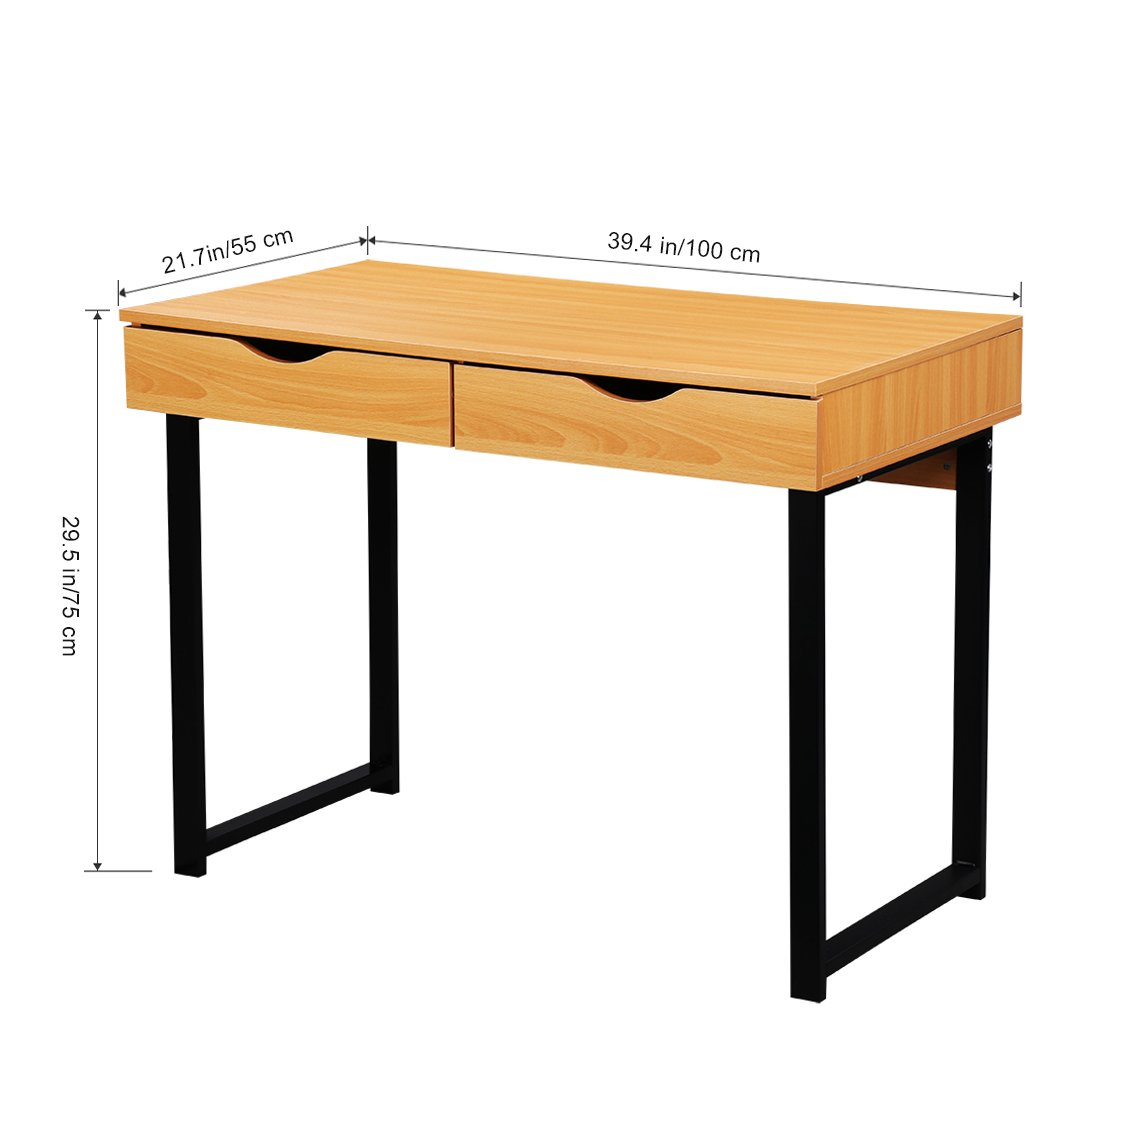 word 39office desks workstations39and. Amazon.com: LANGRIA 39.4\u0027\u0027 Computer Desk Writing Workstation Wood With Drawers For Home Office, Pear Color: Office Products Word 39office Desks Workstations39and